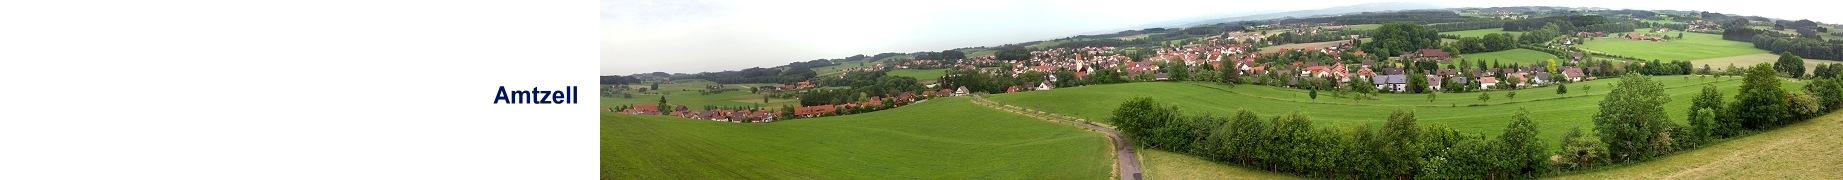 amtzell_pano